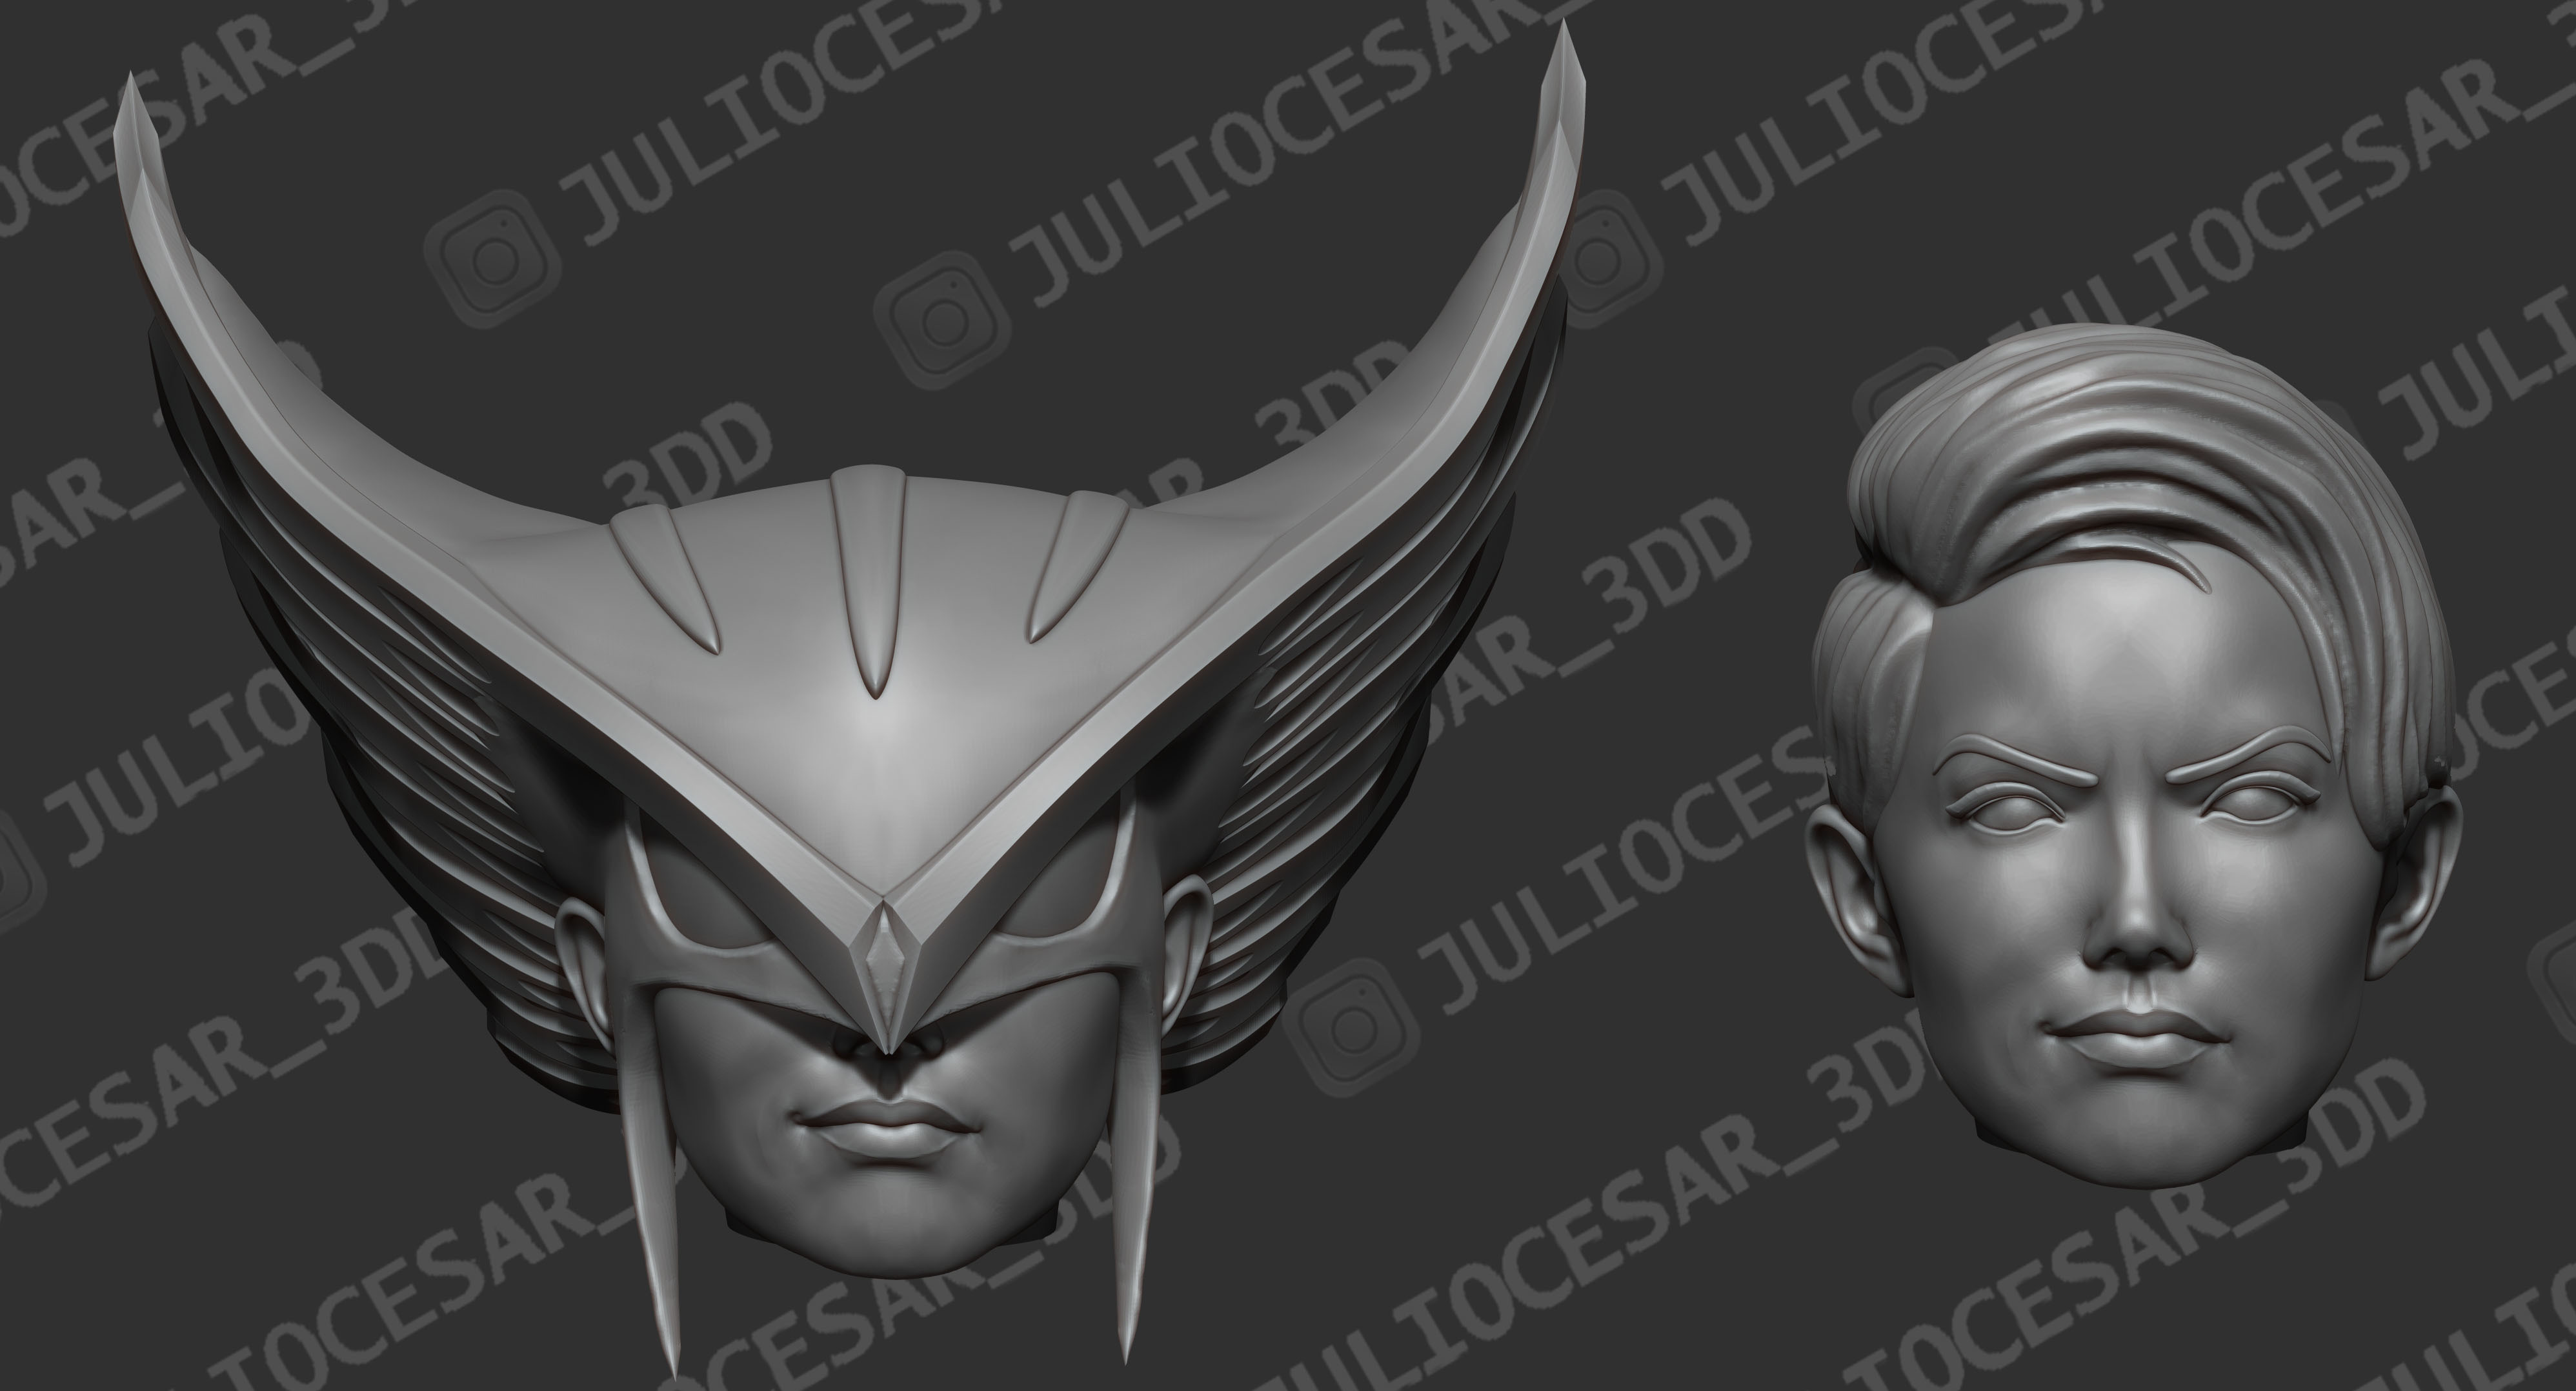 r5ma.jpg Download STL file HawkGirl • 3D printable template, JulioCesar_3DD